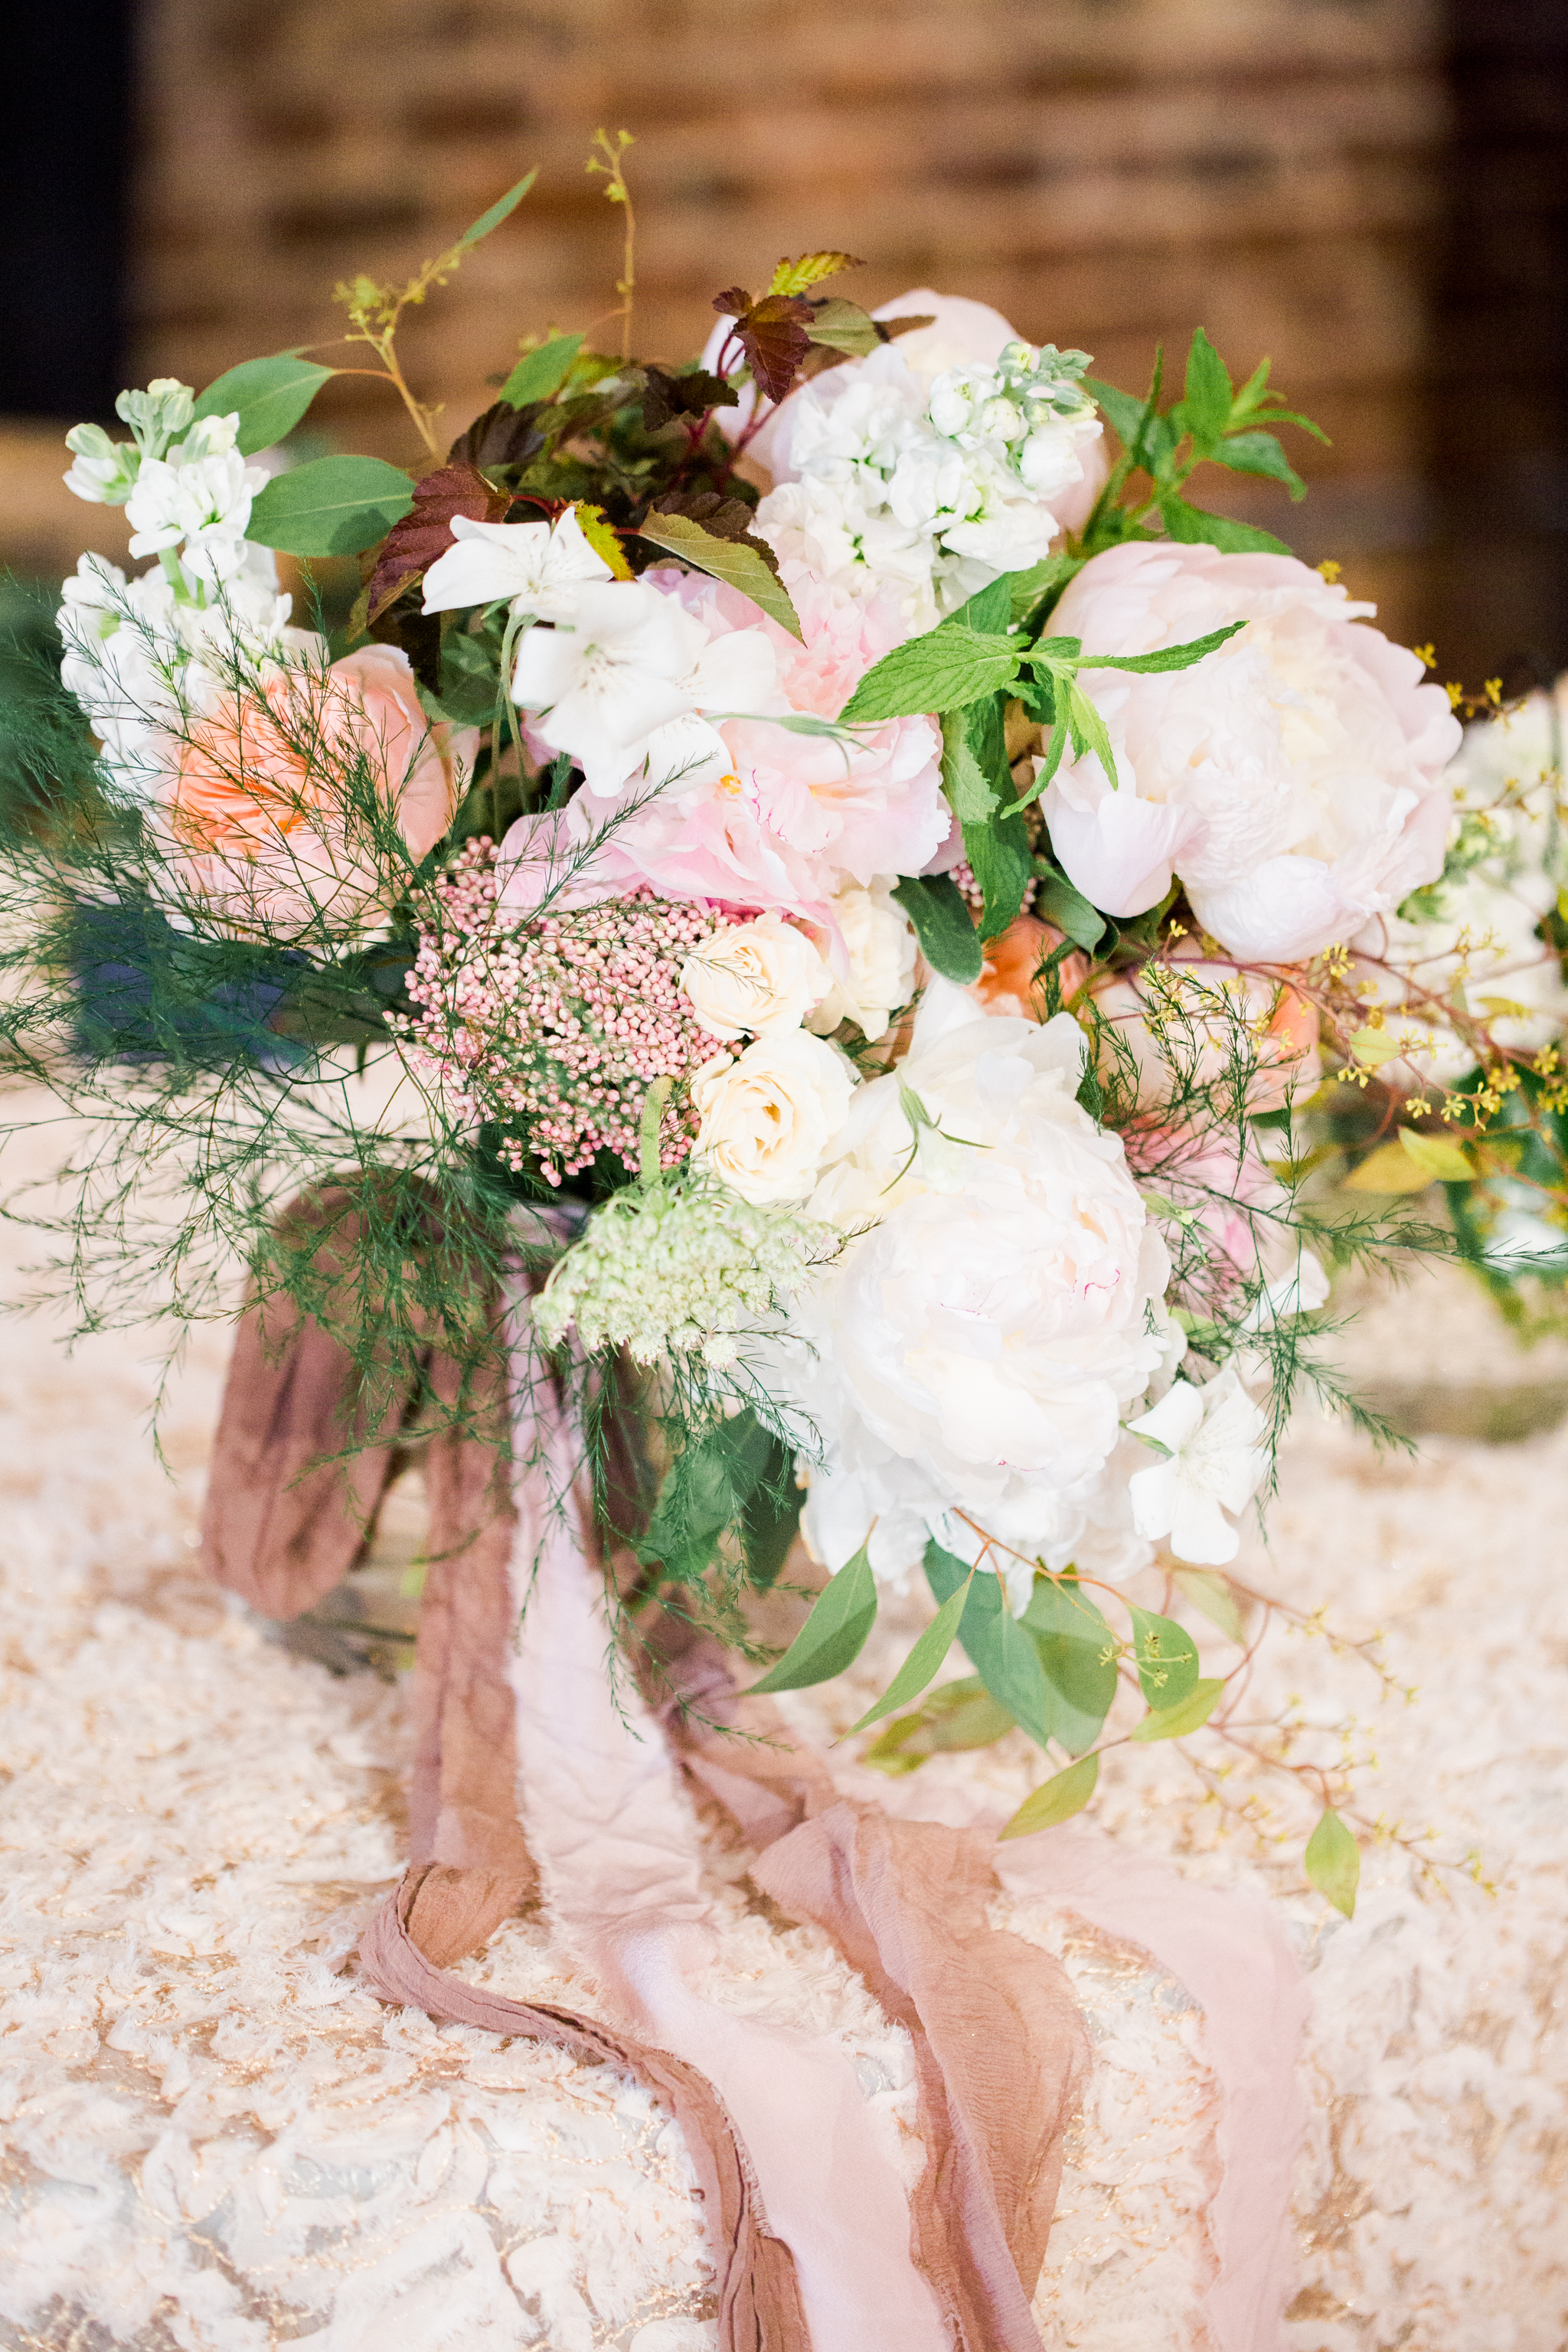 Blue Barn Photography - Bowerbird Flowers - bridal bouquet - summer wedding